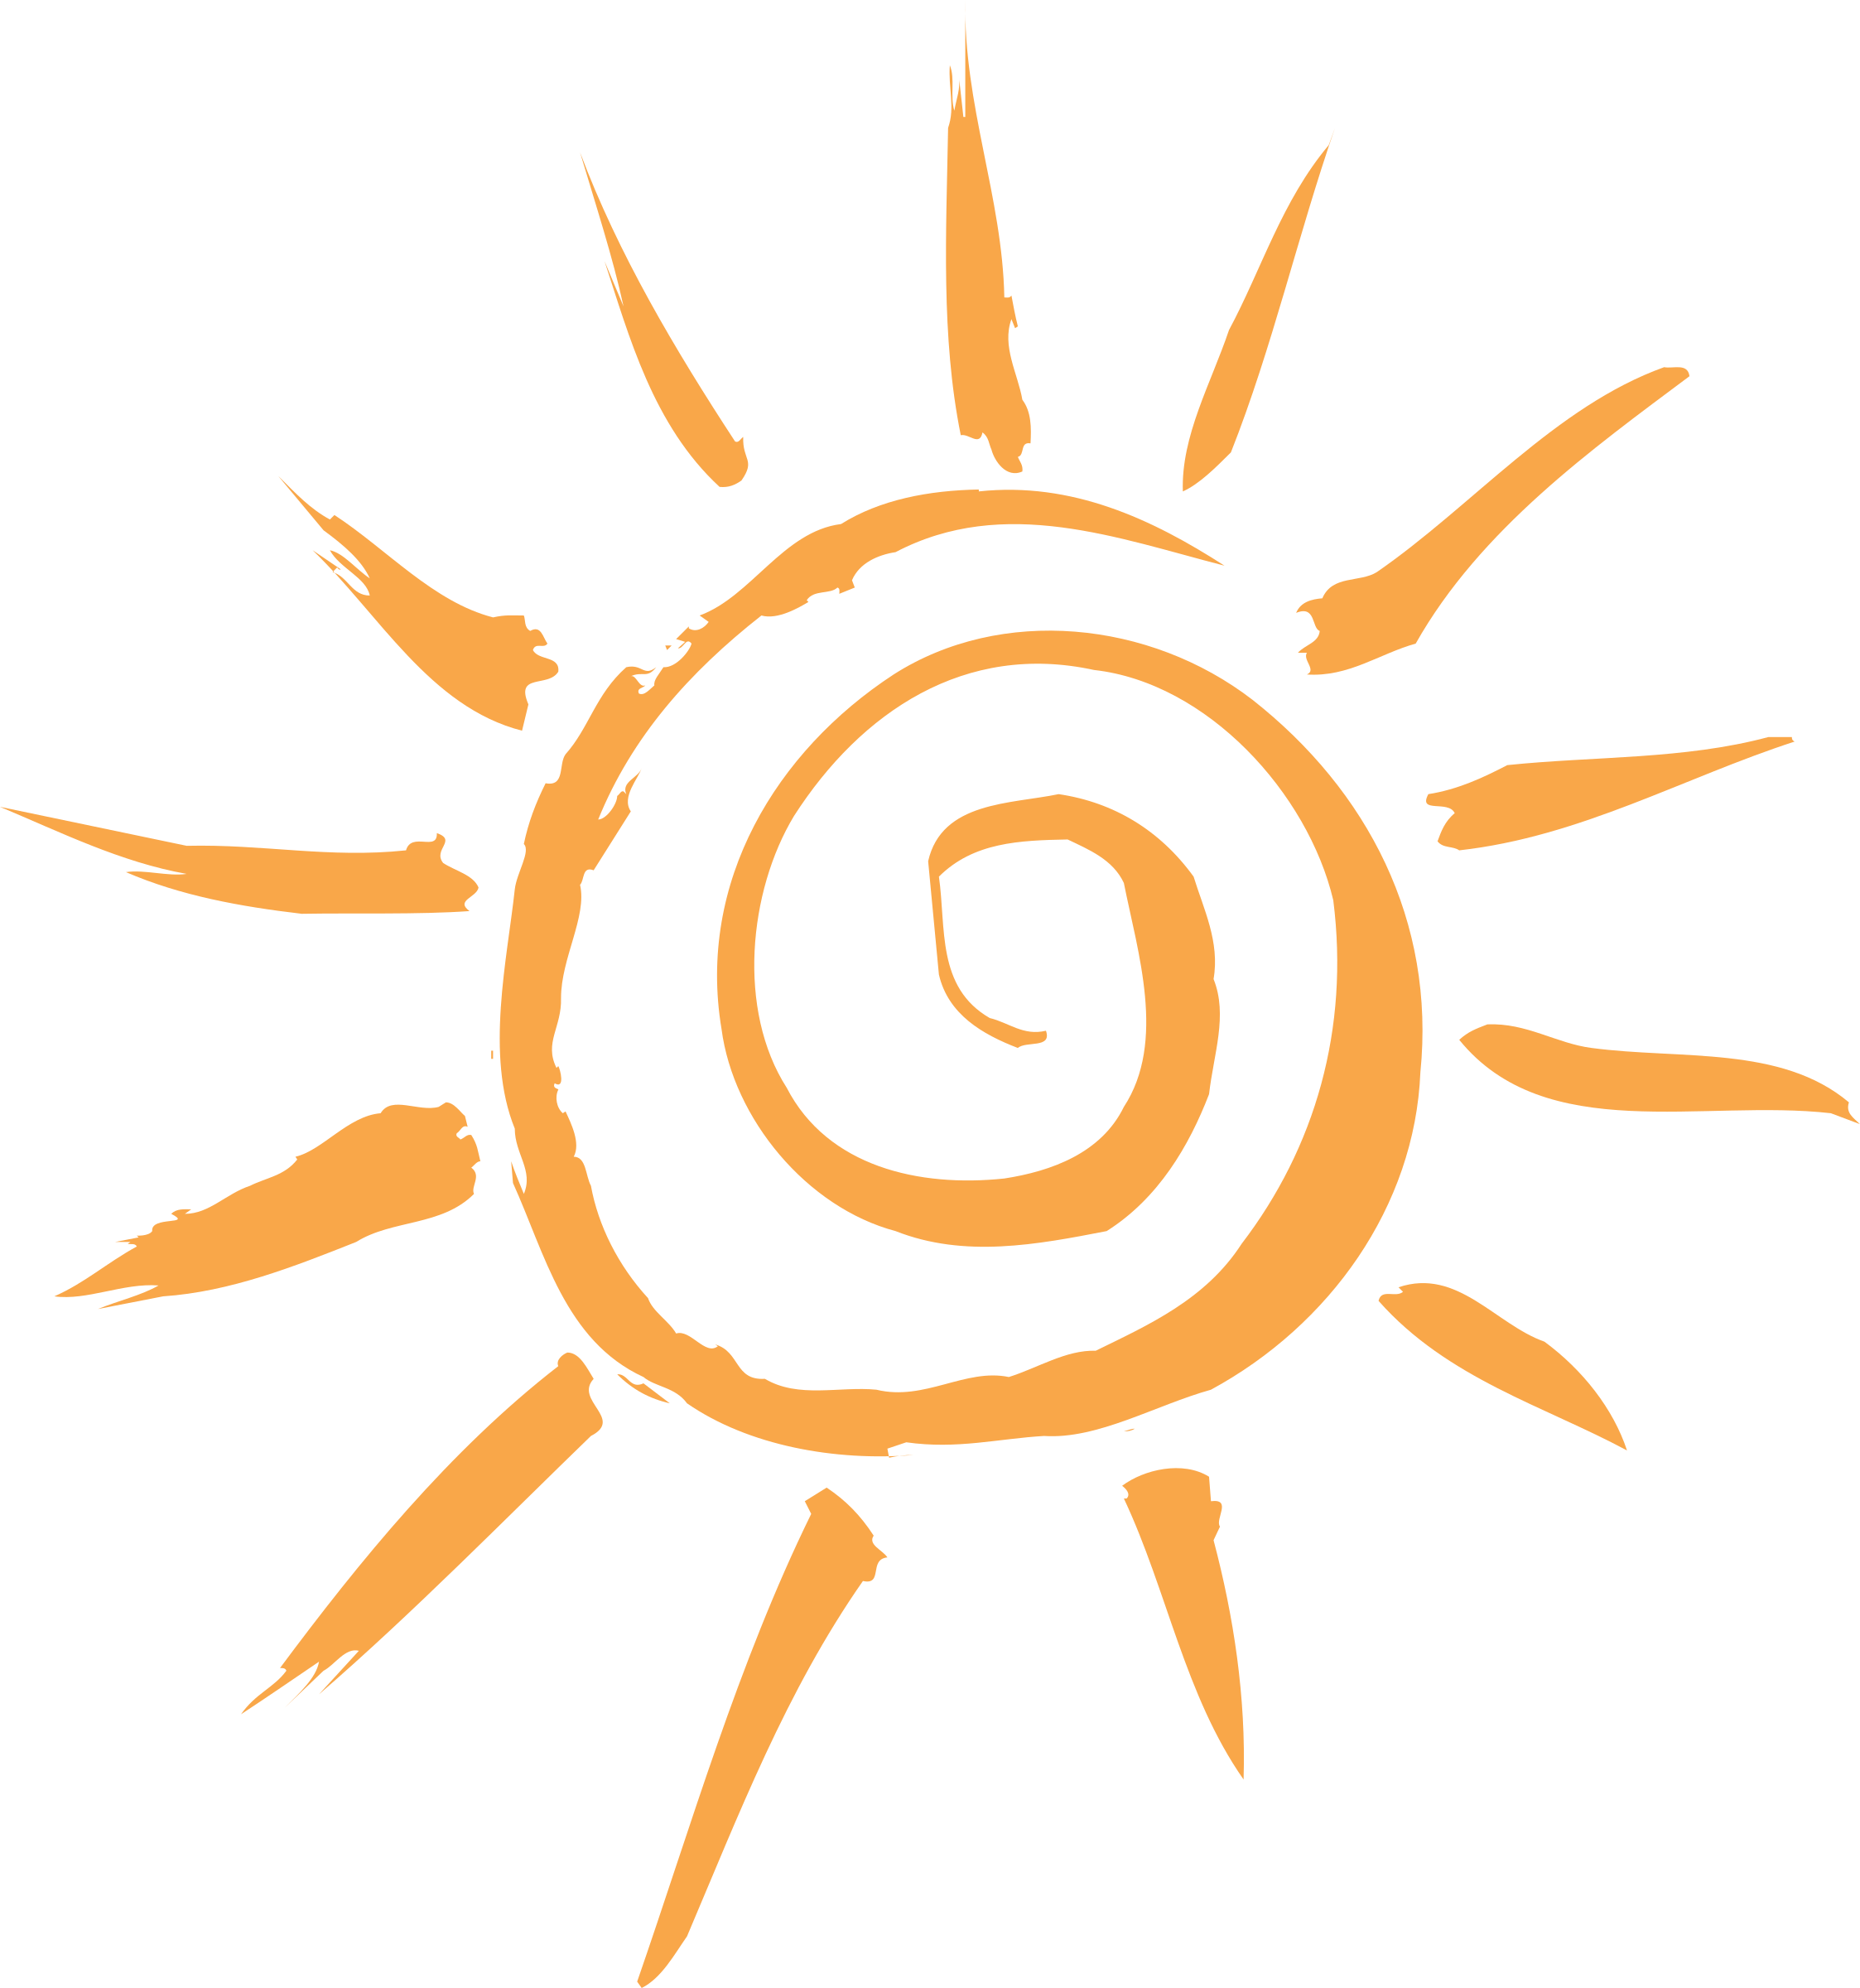 simple sun motif by ryanlerch